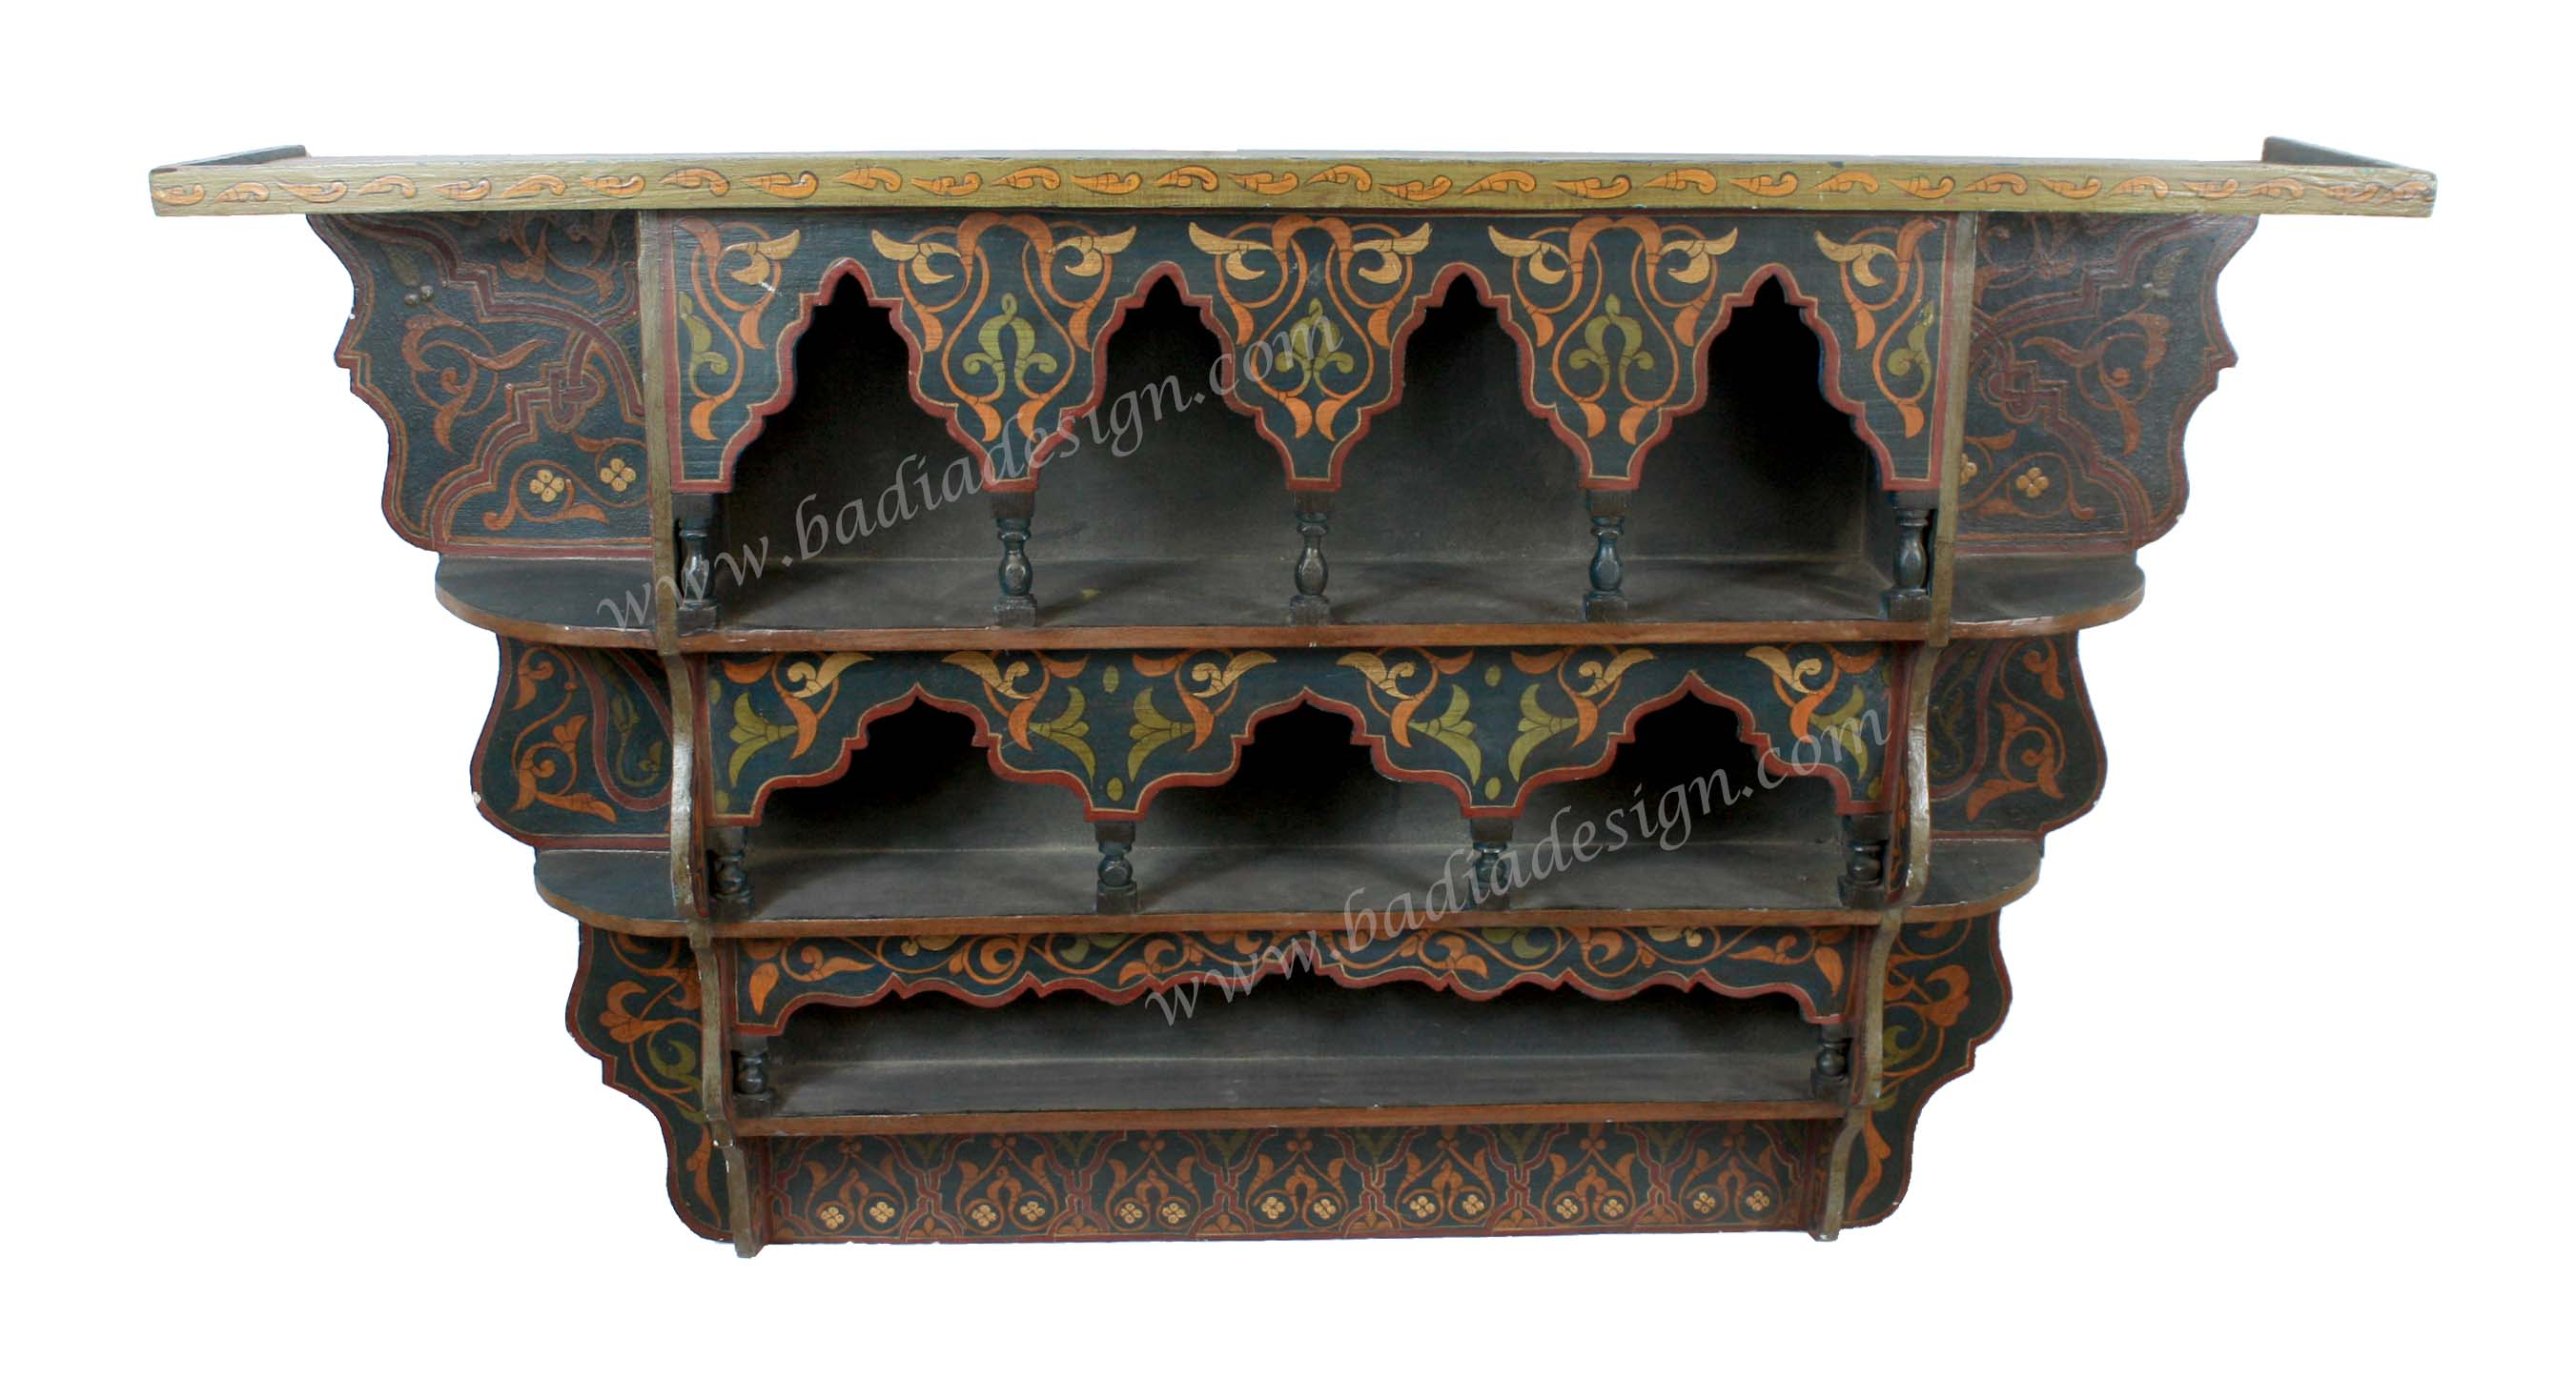 Moroccan Wooden Wall Shelf